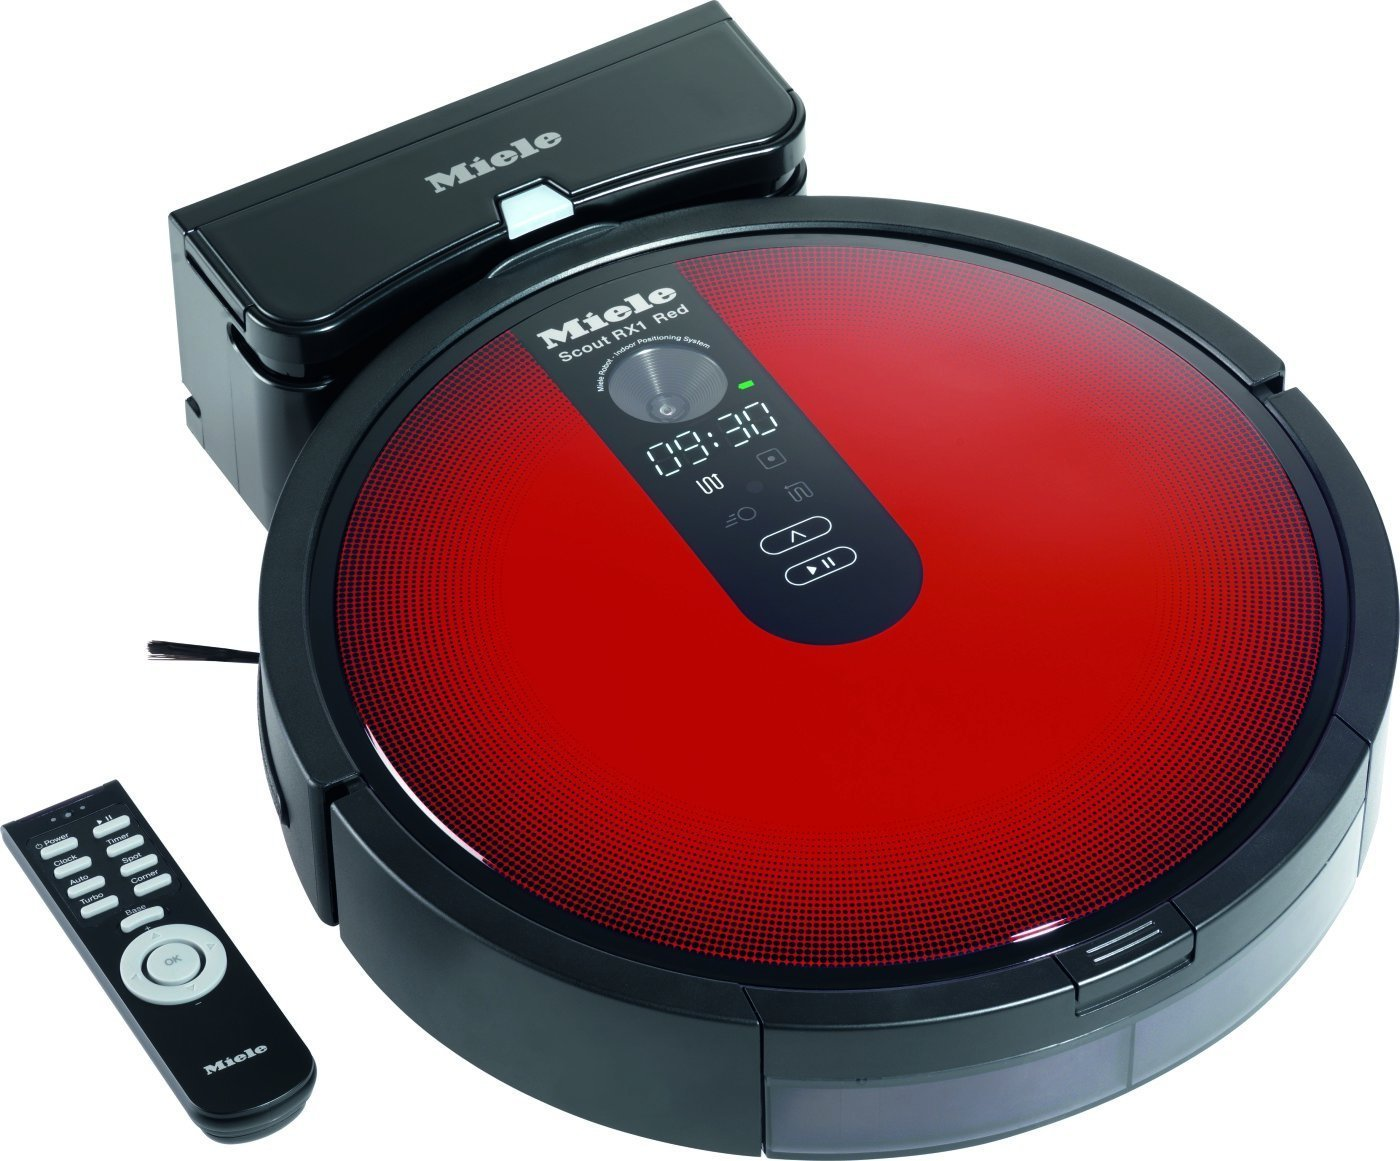 Miele Scout RX1 Red Robotic Vacuum